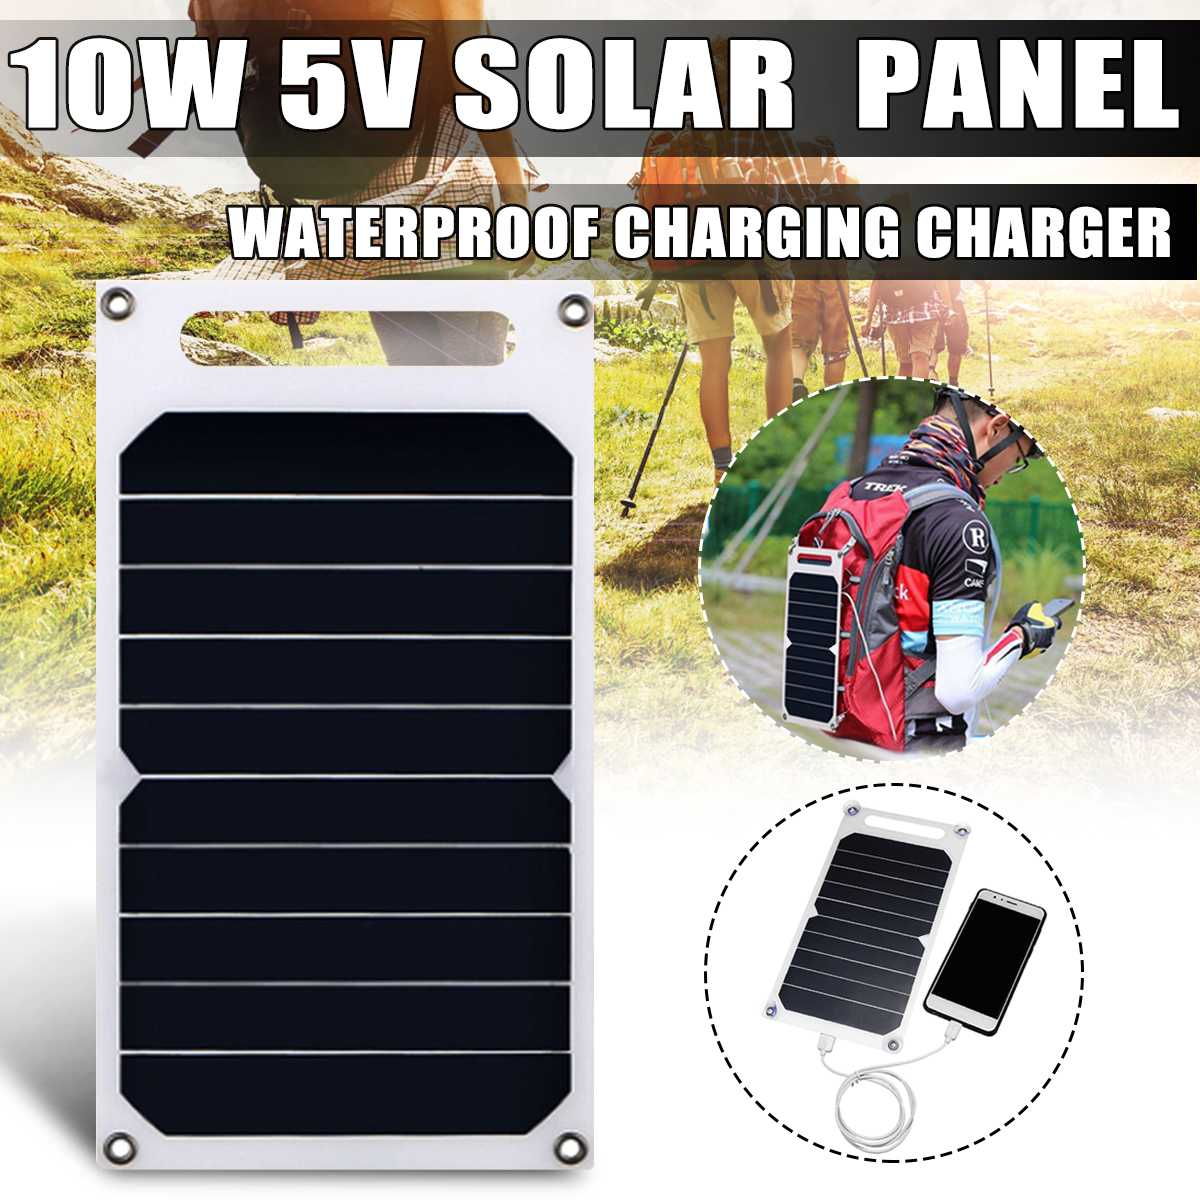 <font><b>5V</b></font> <font><b>10W</b></font> Waterproof <font><b>Solar</b></font> <font><b>Panel</b></font> Slim Light USB Charger Charging Portable Power Bank Pad Universal For Phone Lighting Car Charger image